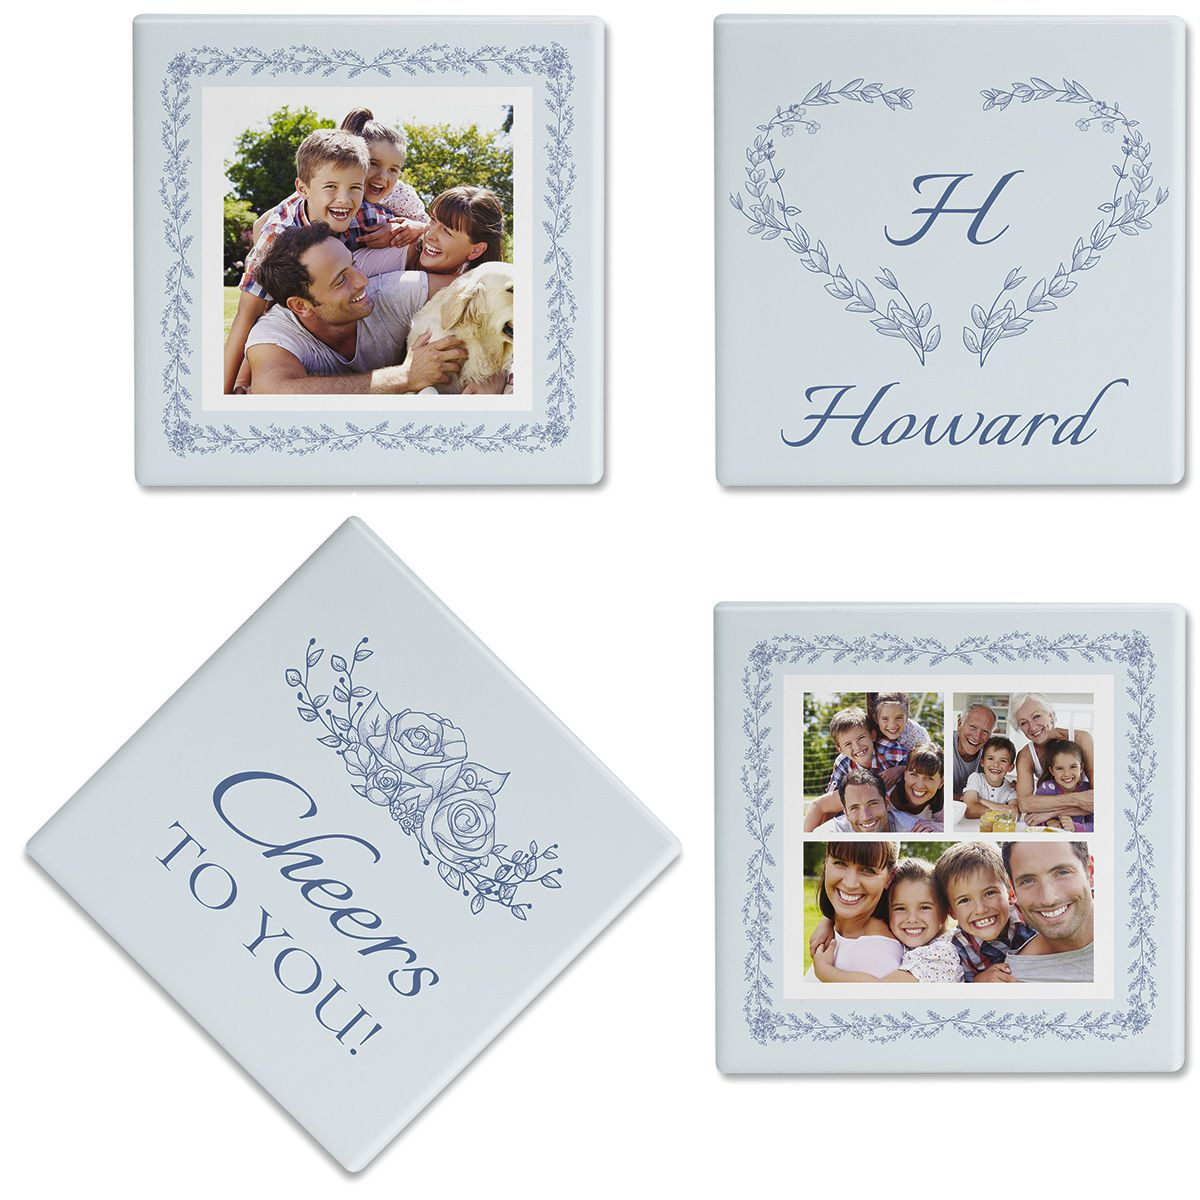 Laurel Cheers Personalized Photo Coasters